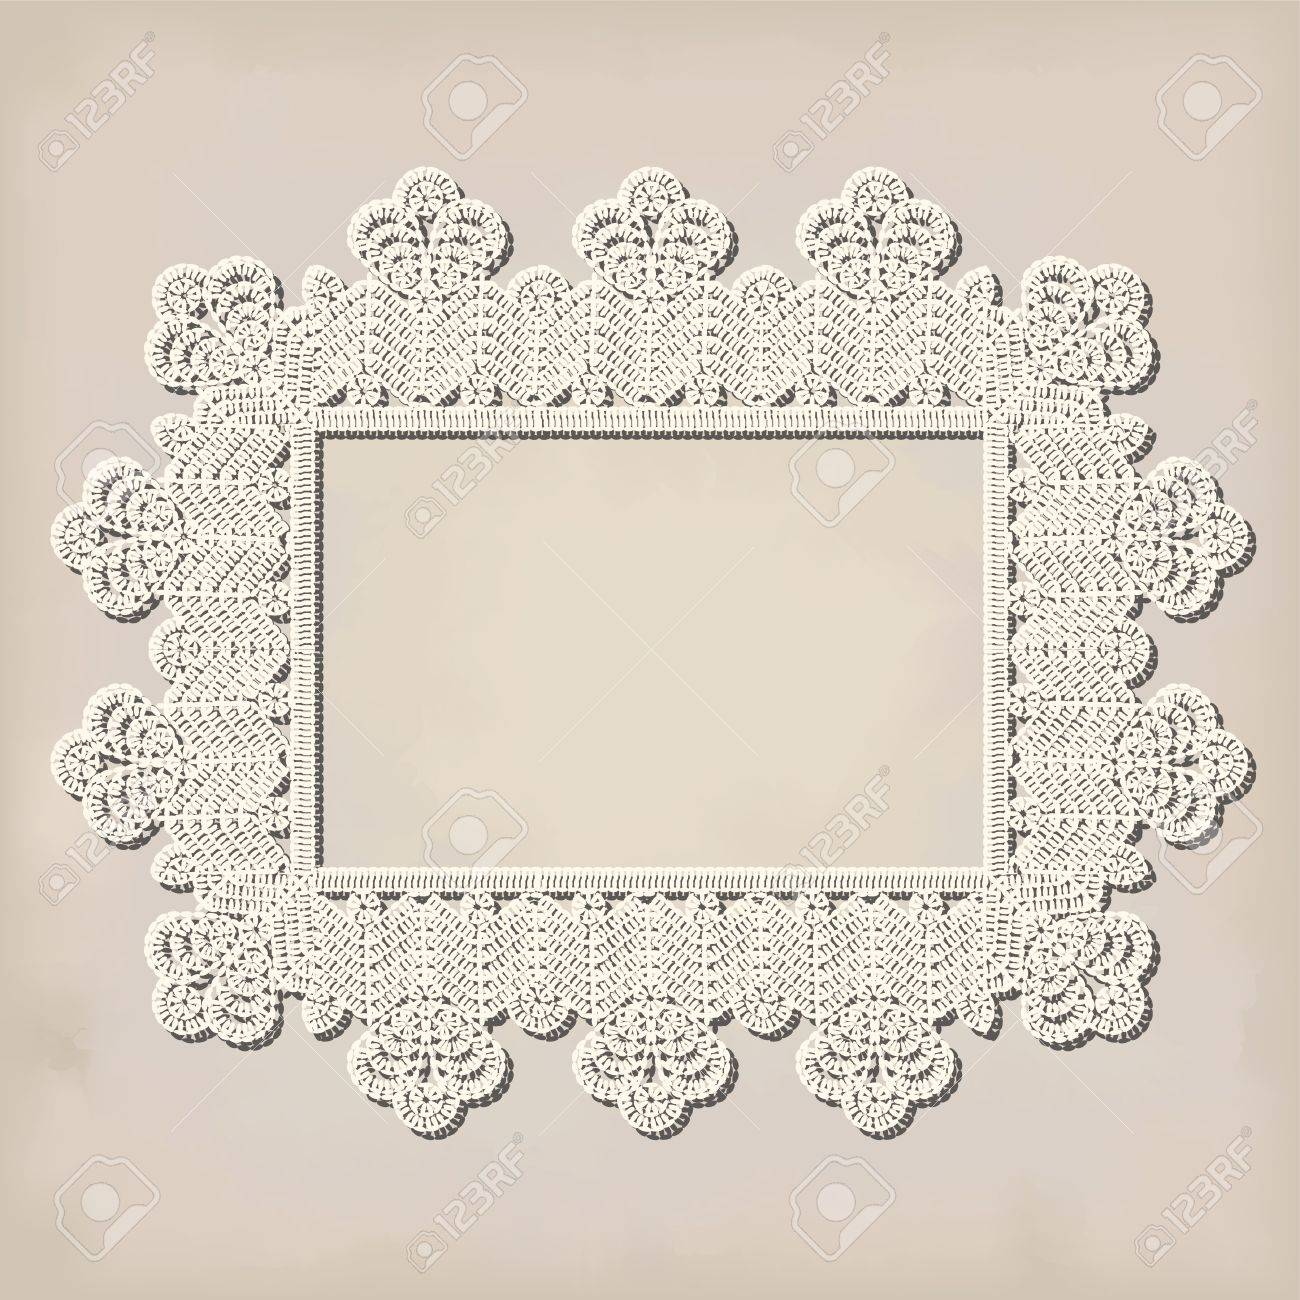 Crochet Doily On Grunde Background Royalty Free Cliparts, Vectors ...